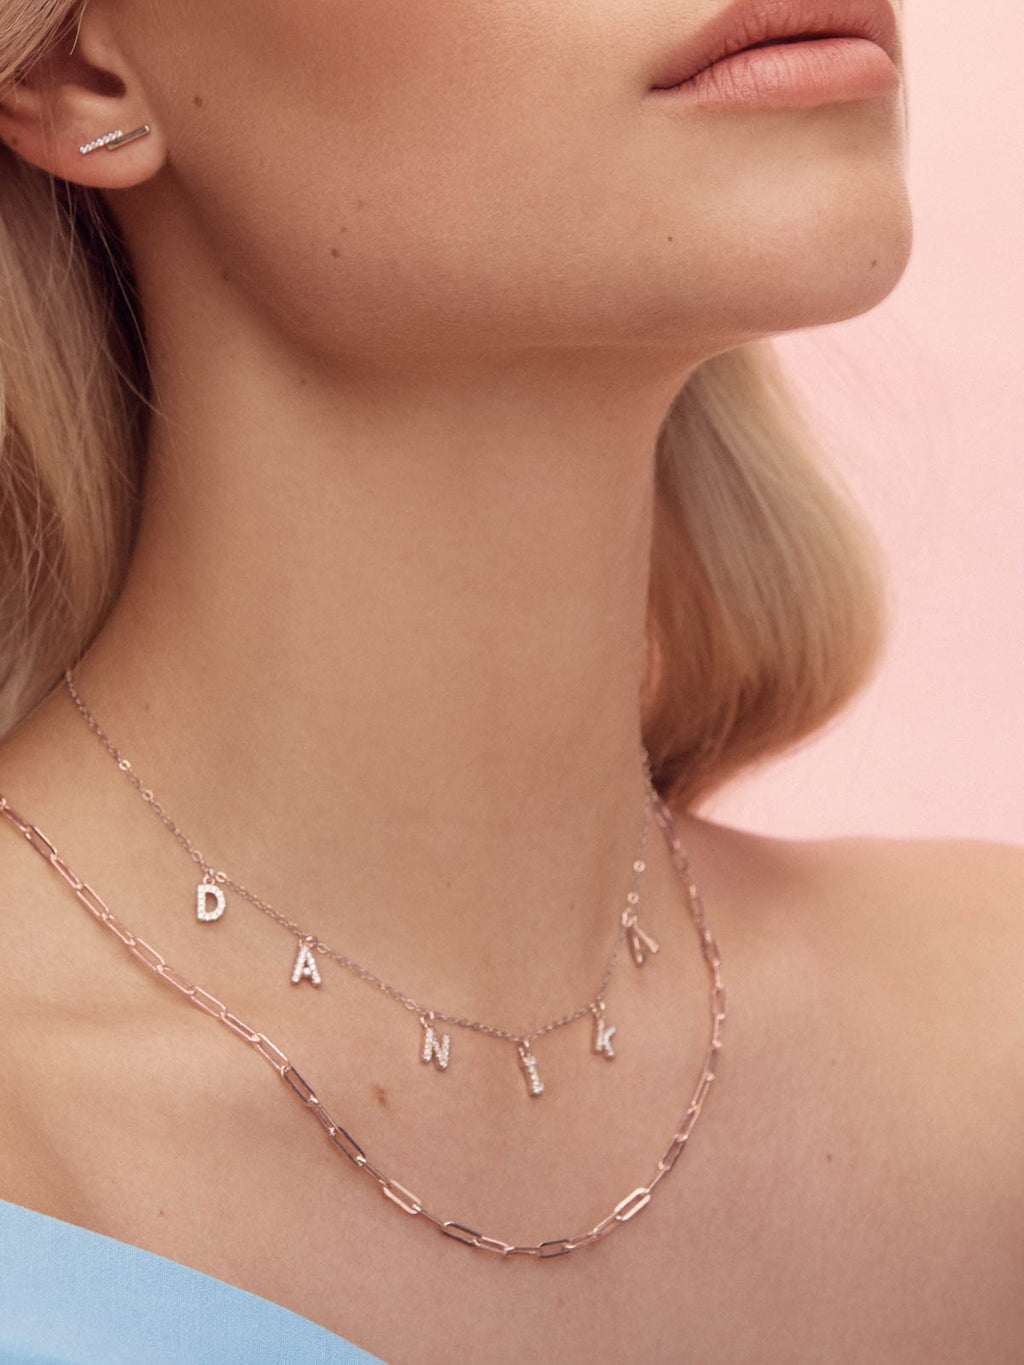 Rose Gold Paperclip Chaink Necklace by The Faint Hearted Jewelry